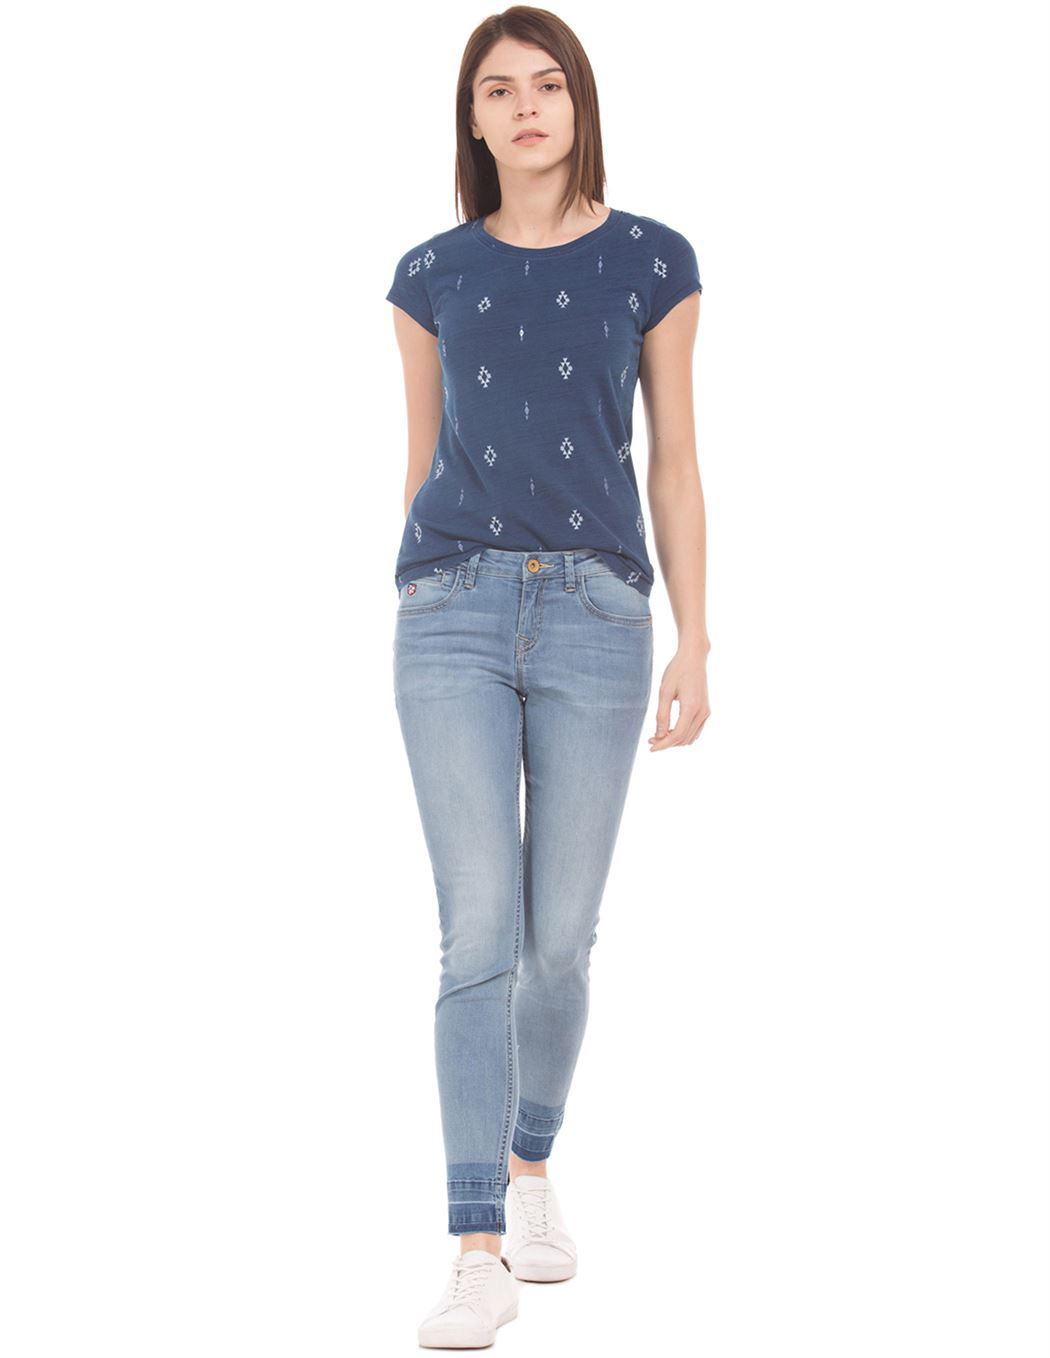 U.S. Polo Assn. Women Solid Casual Wear Jeans